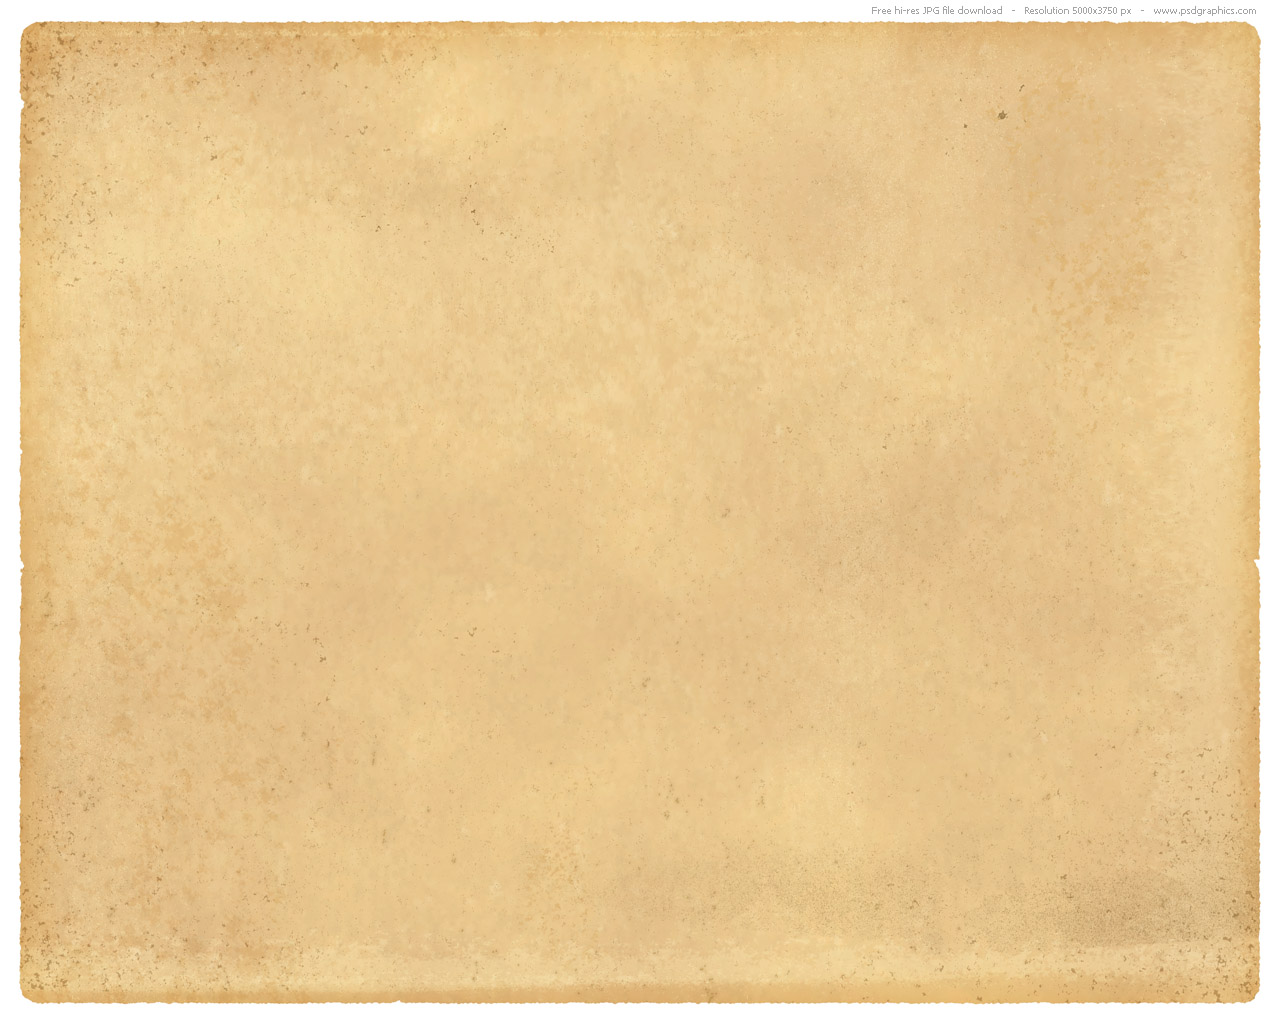 Large preview (1280x1024px): Old paper background